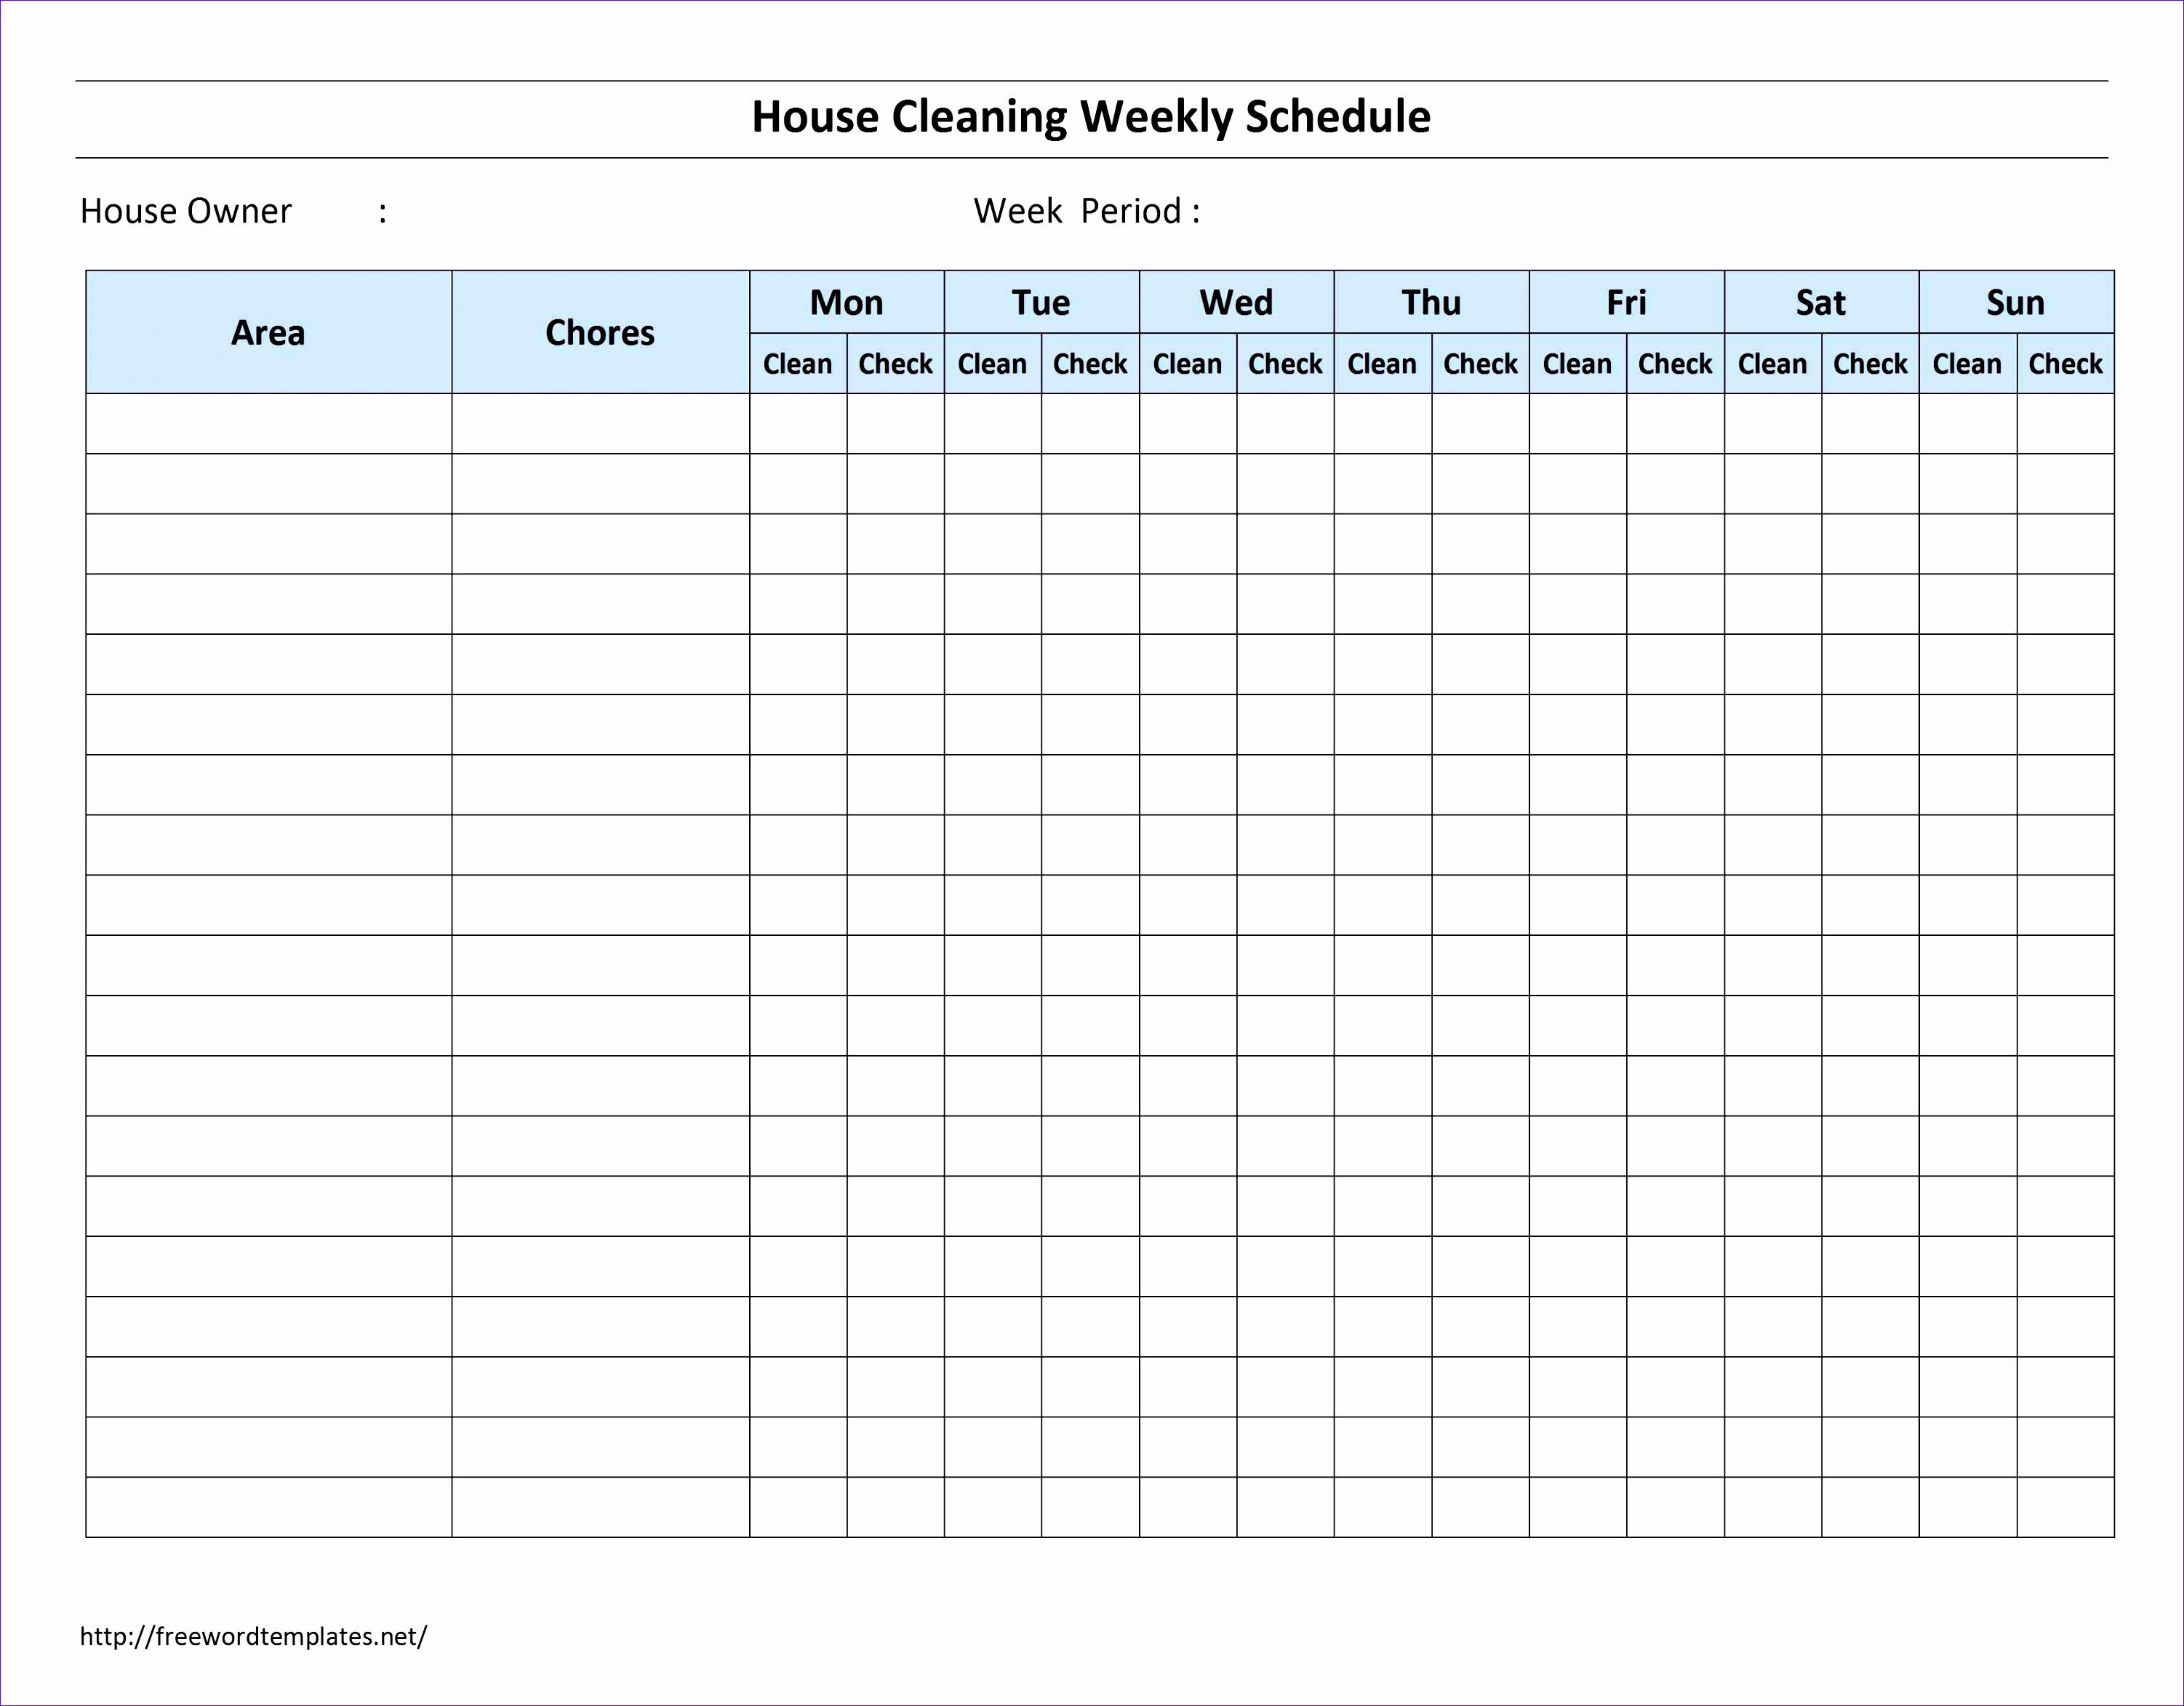 Construction Schedule Using Excel Template Ttvnk Best Of House Cleaning organizing Pinterest